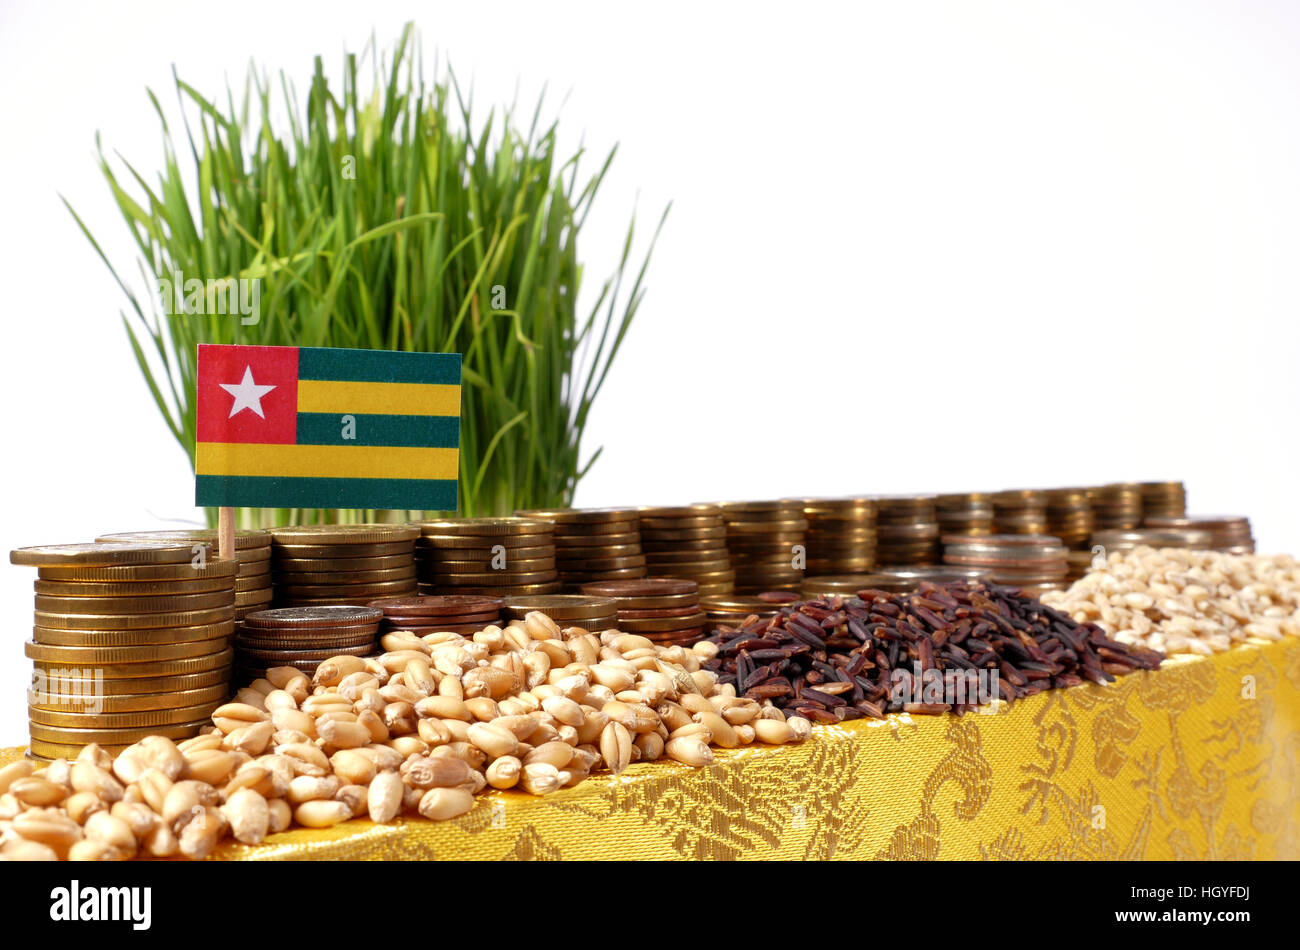 Togo flag waving with stack of money coins and piles of wheat and rice seeds - Stock Image